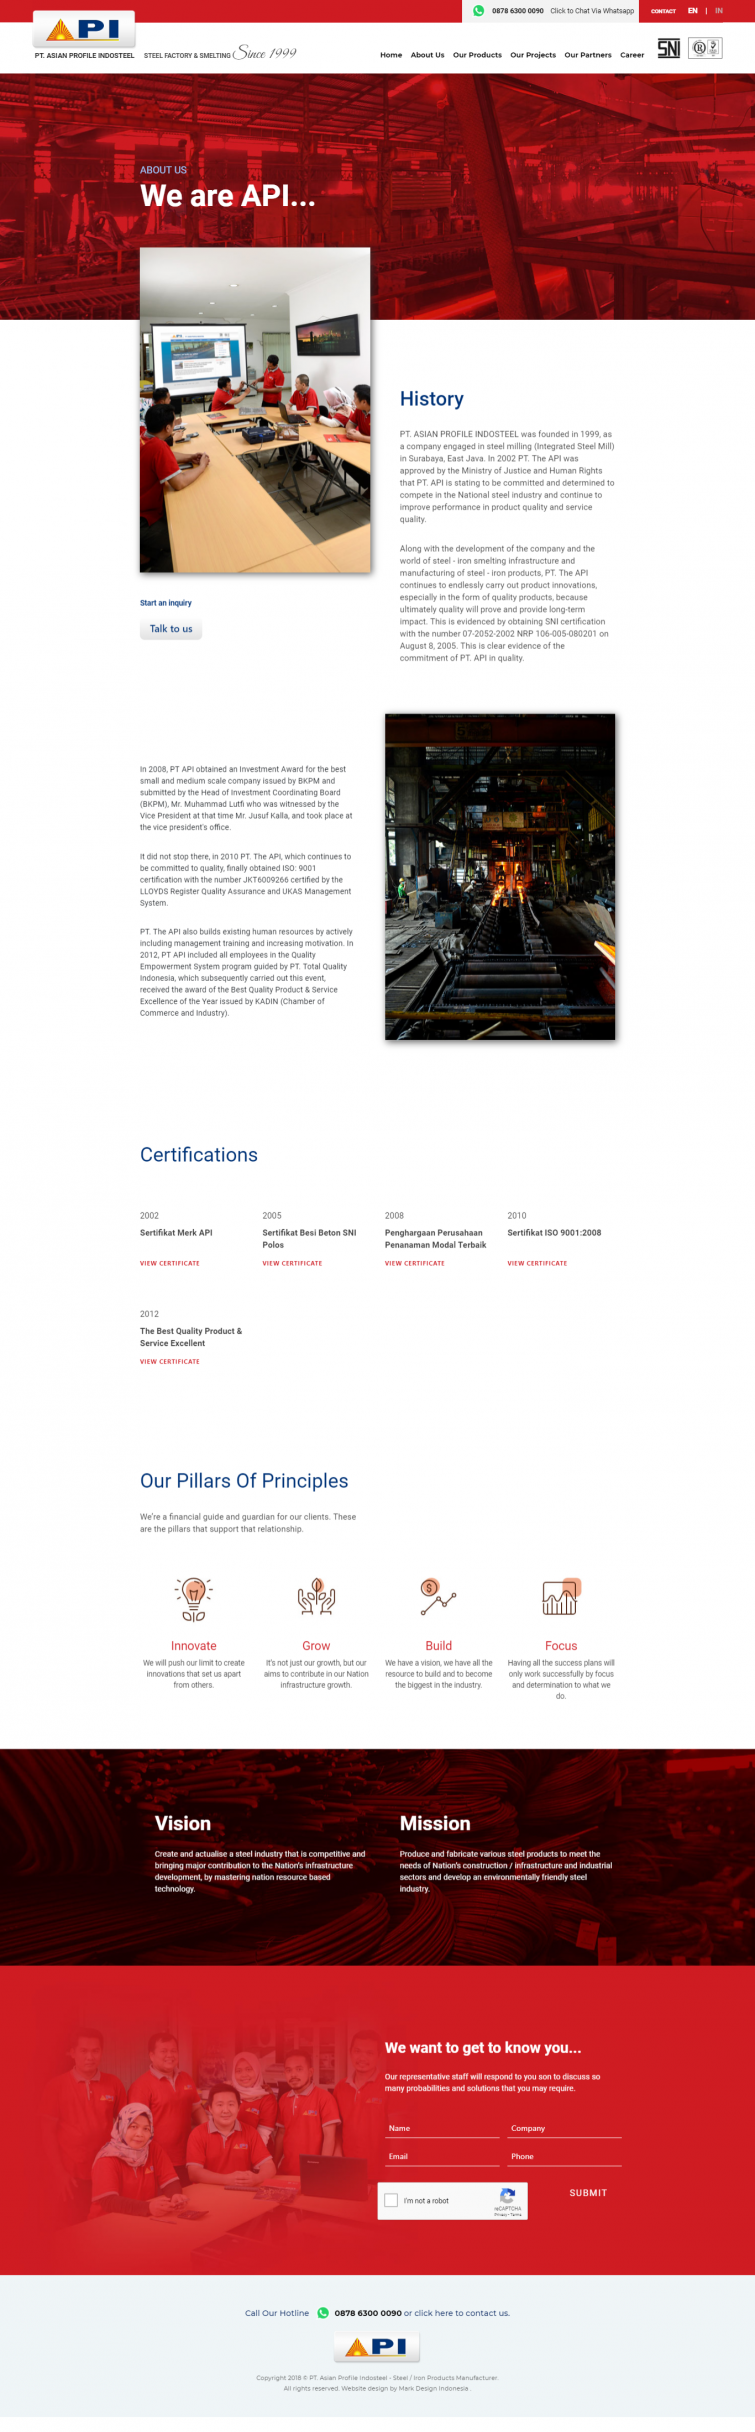 pt-asian-profile-indosteel-website-design-jakarta-surabaya